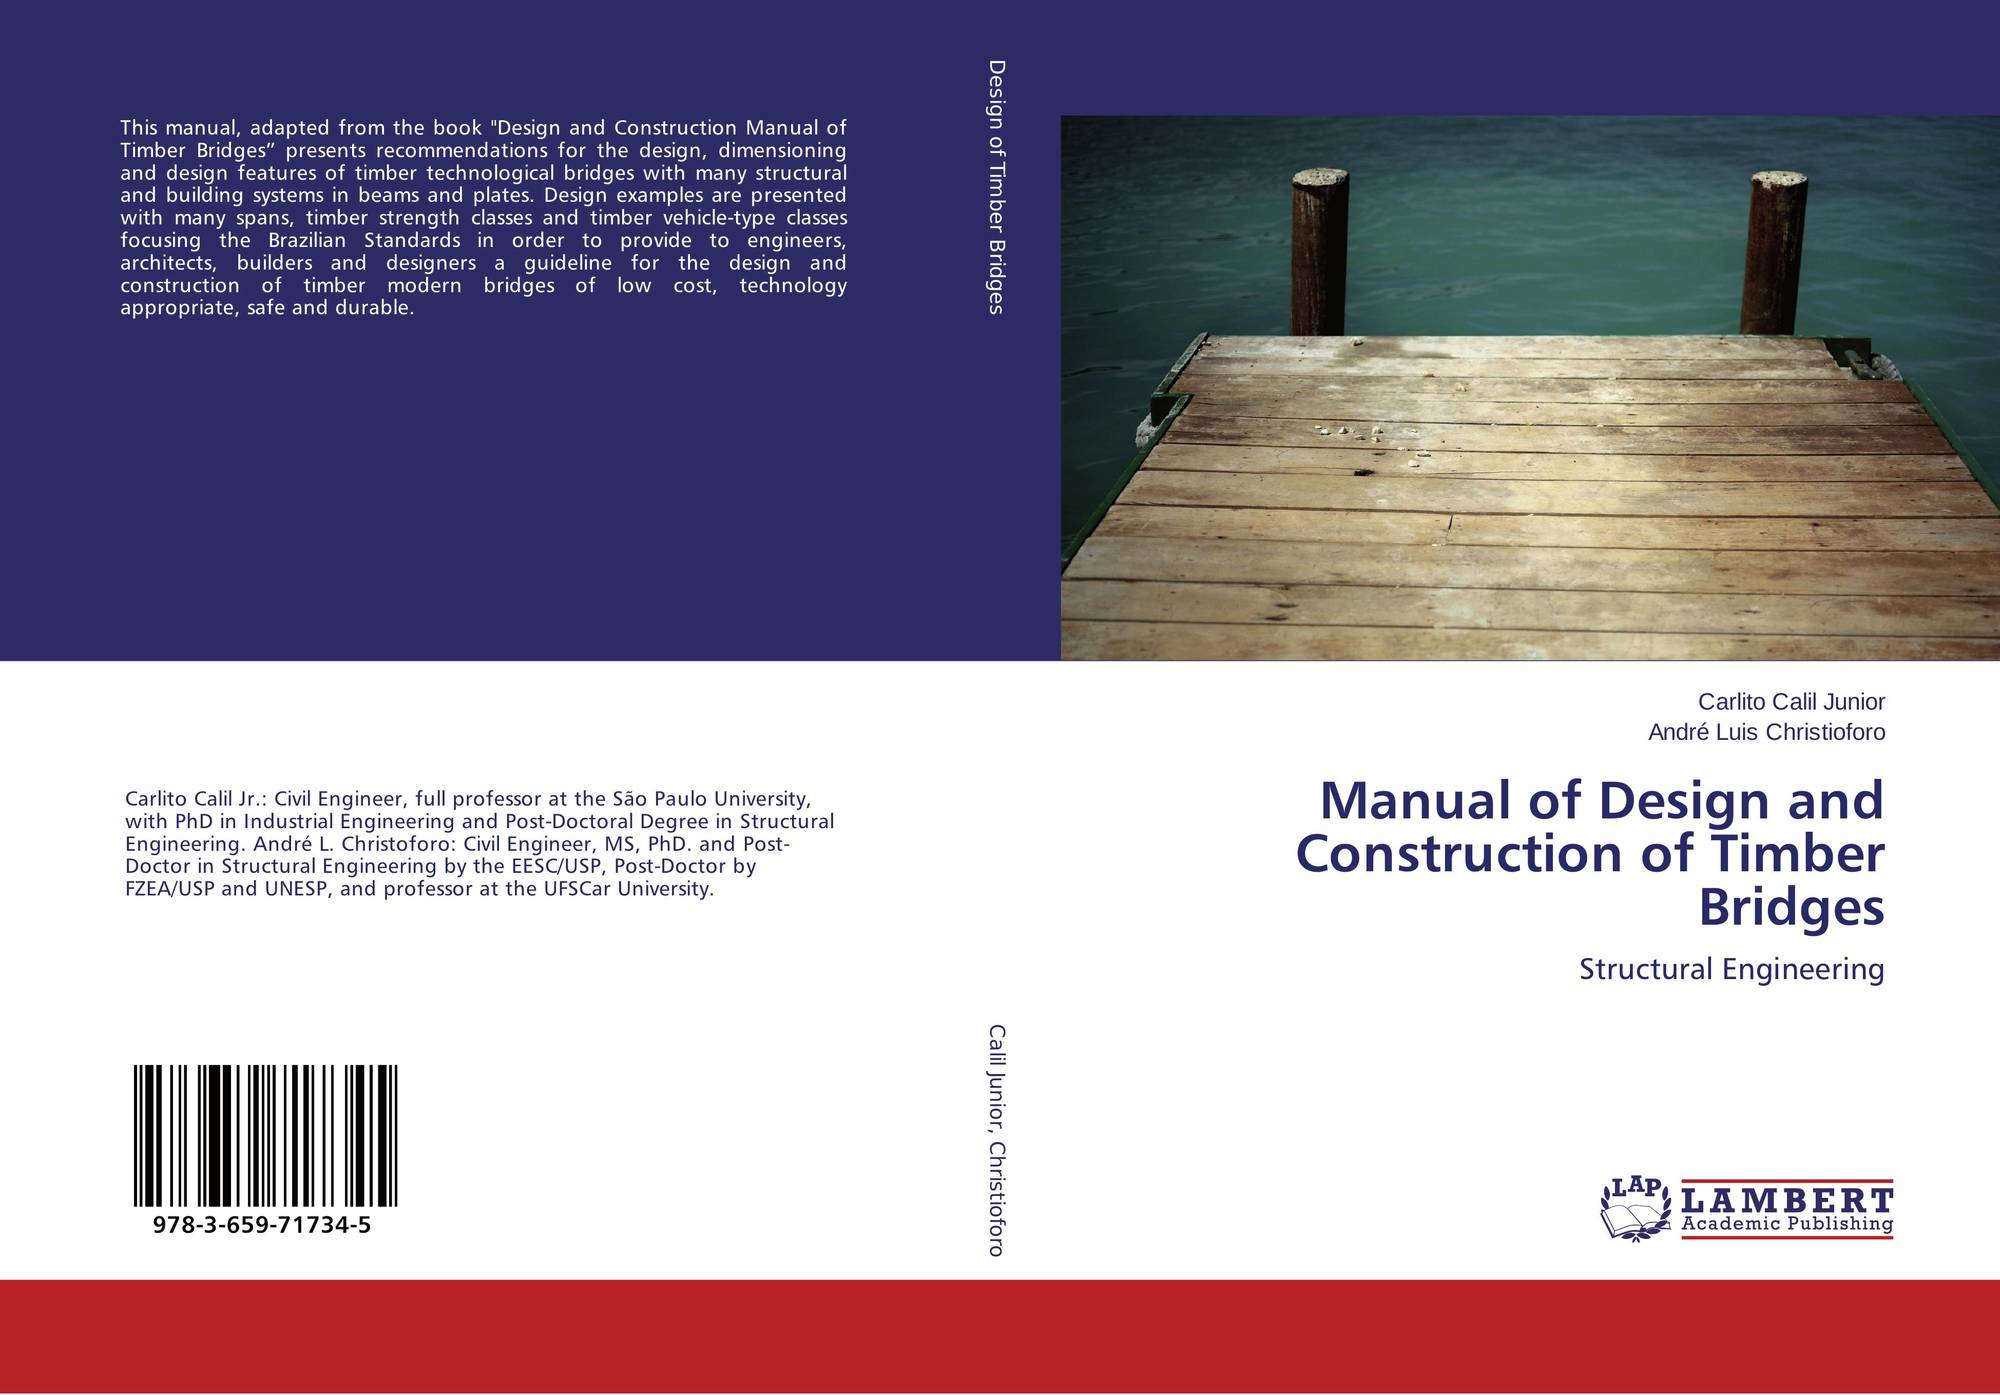 Manual of Design and Construction of Timber Bridges, 978-3-659-71734